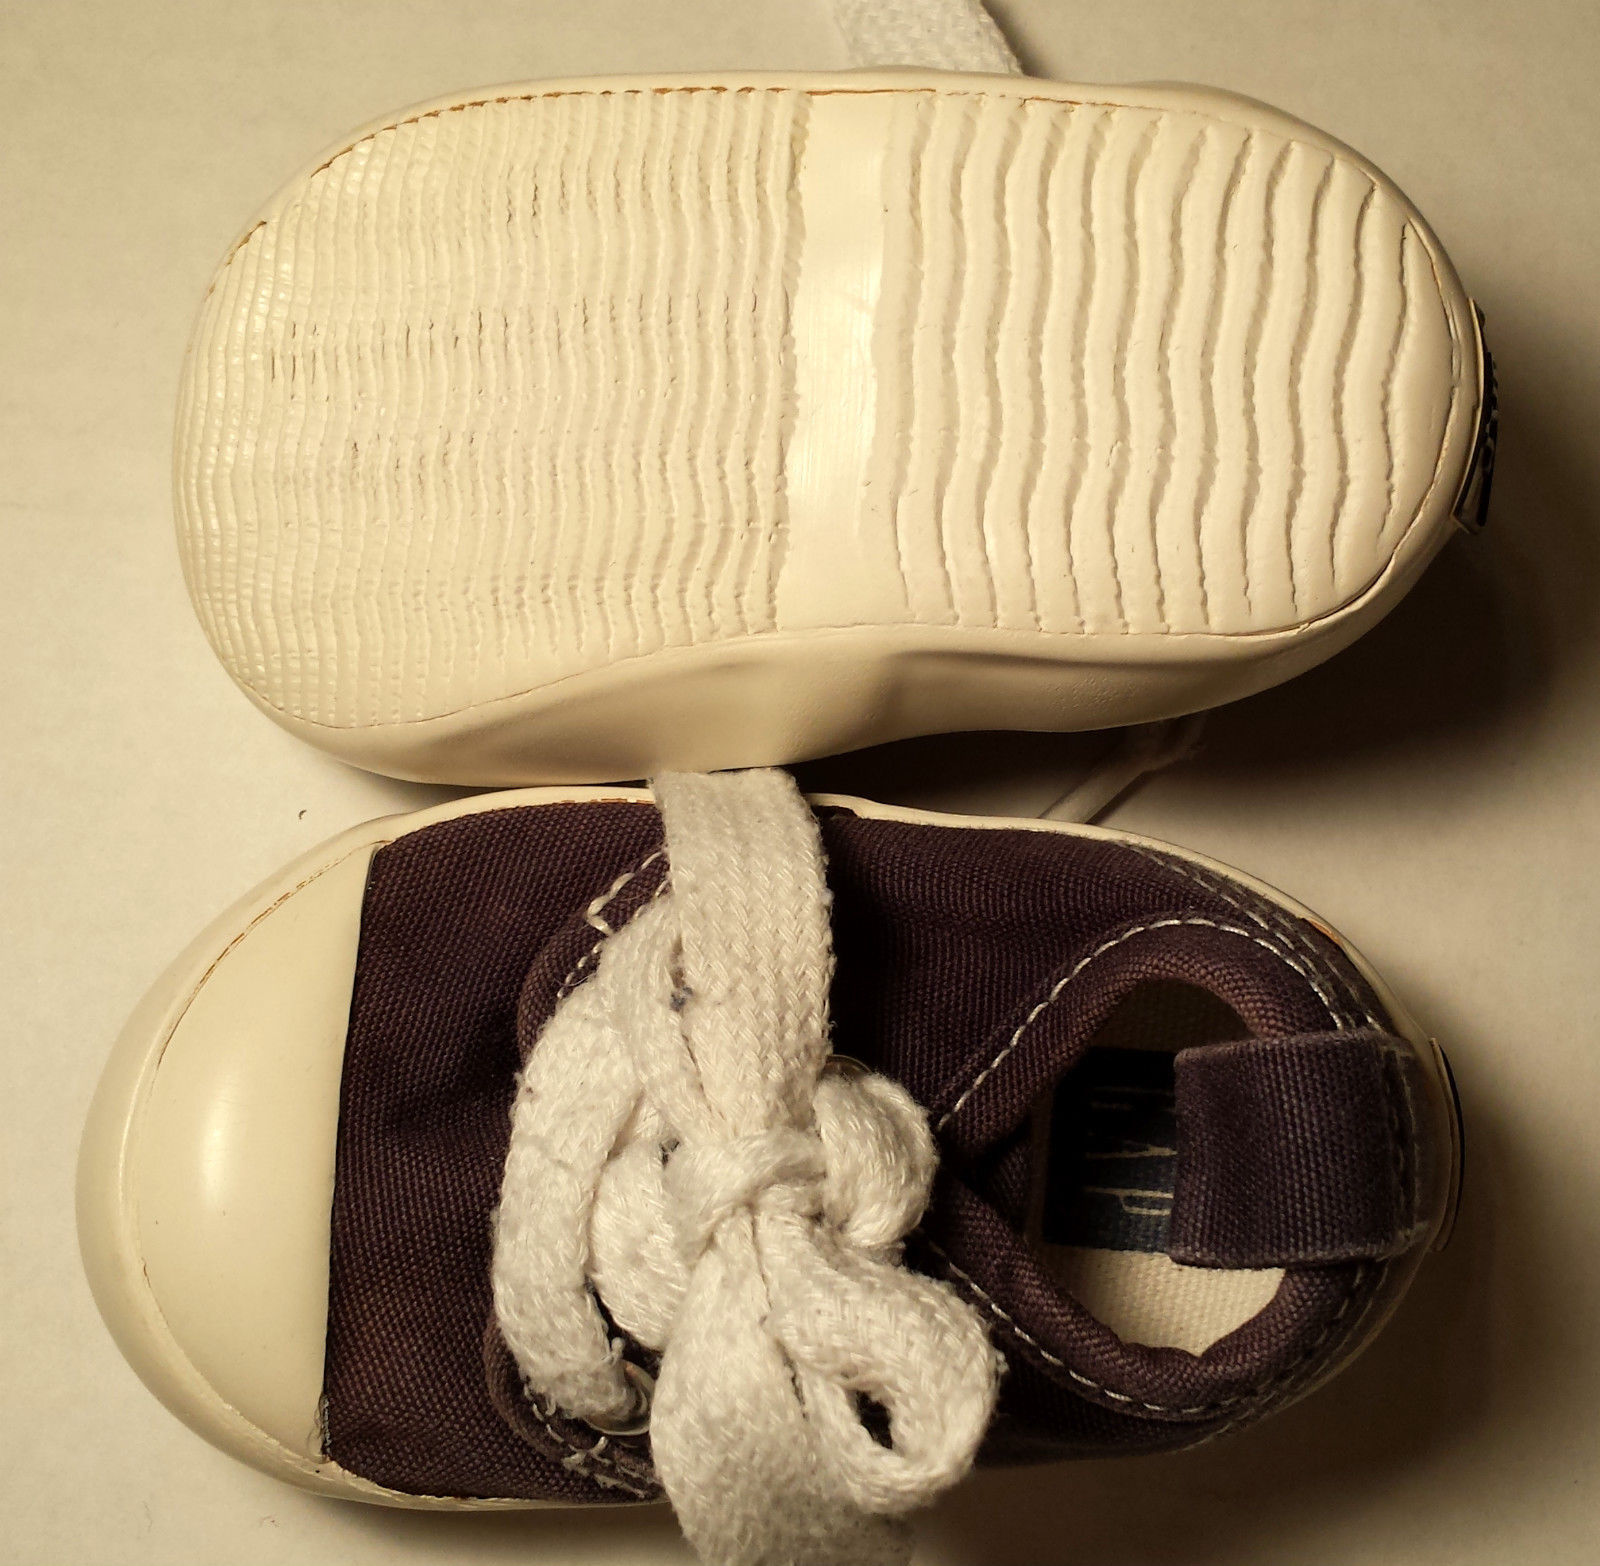 Boy's Or Girl's Size 0-3 M Months Navy Blue/ White Baby Gap Crib Shoes W/ Laces